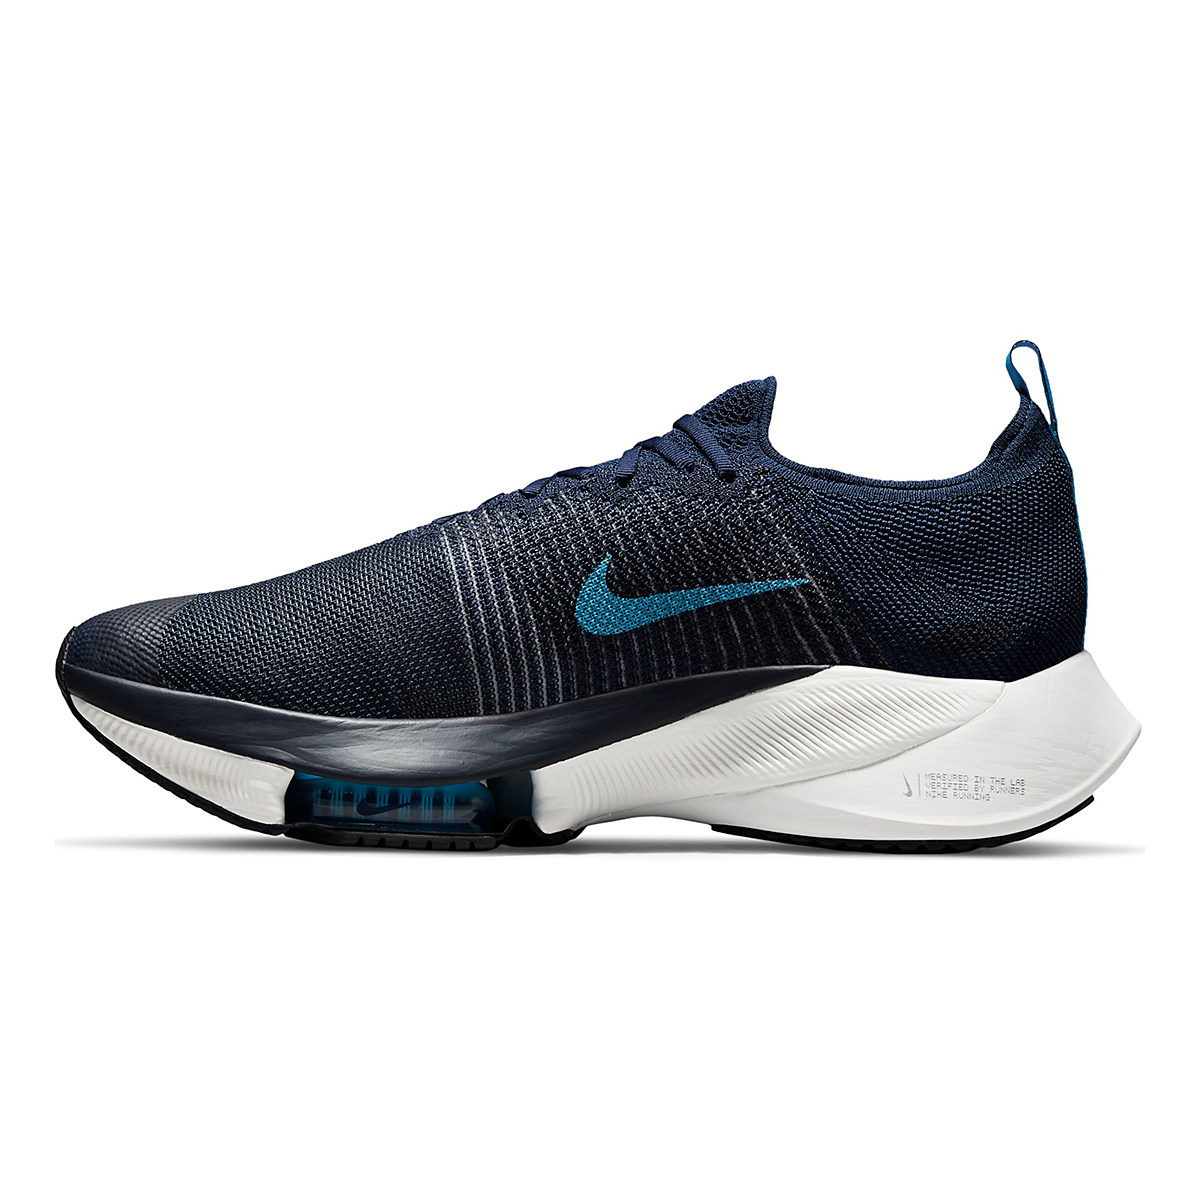 Men's Nike Air Zoom Tempo Next% Running Shoe - Color: College Navy/Chlorine Blue/Platinum Tint - Size: 7.5 - Width: Regular, College Navy/Chlorine Blue/Platinum Tint, large, image 2